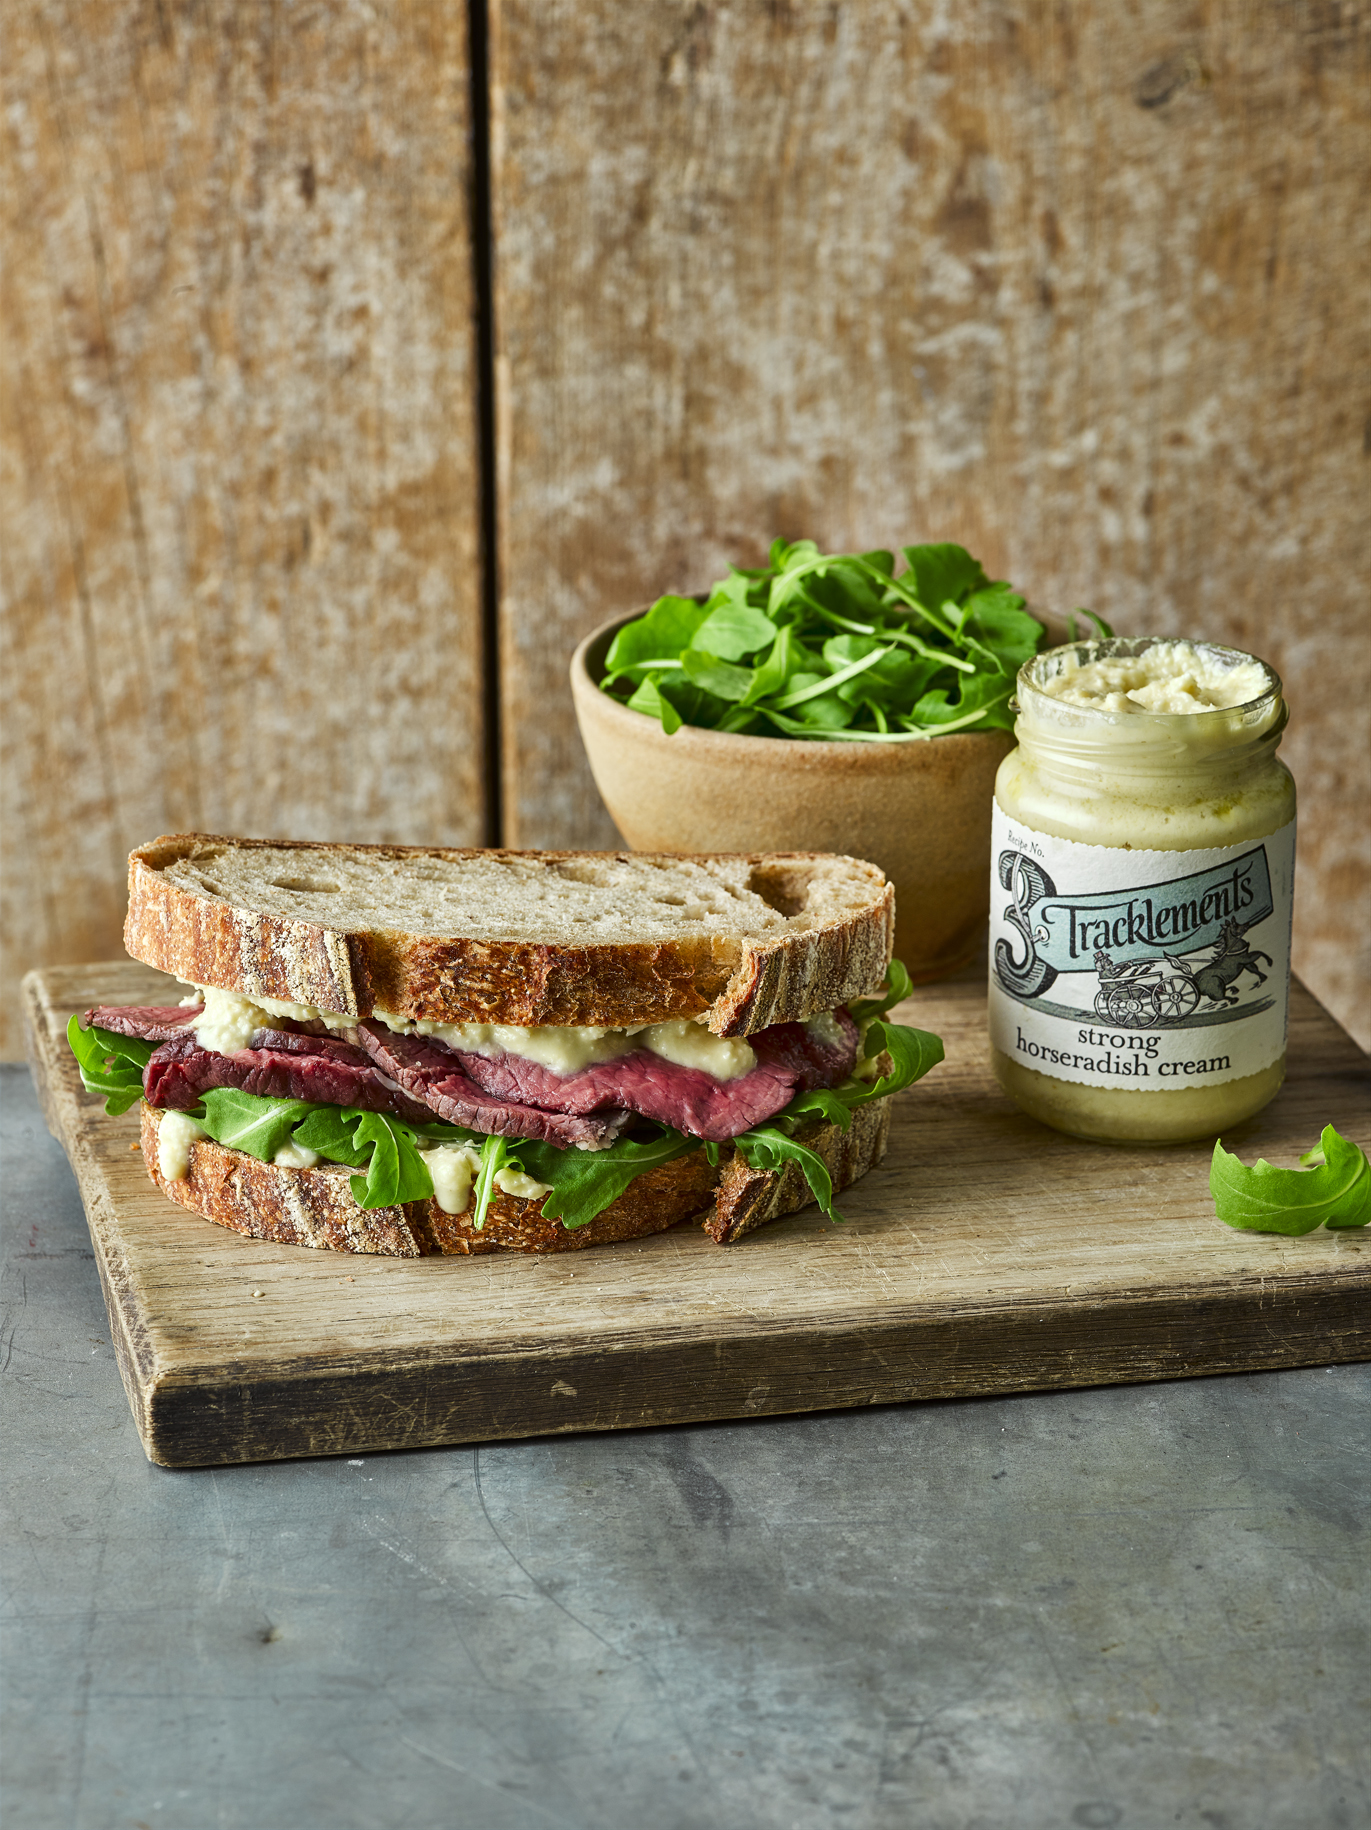 Rare Roast Beef Sandwich with Strong Horseradish Cream